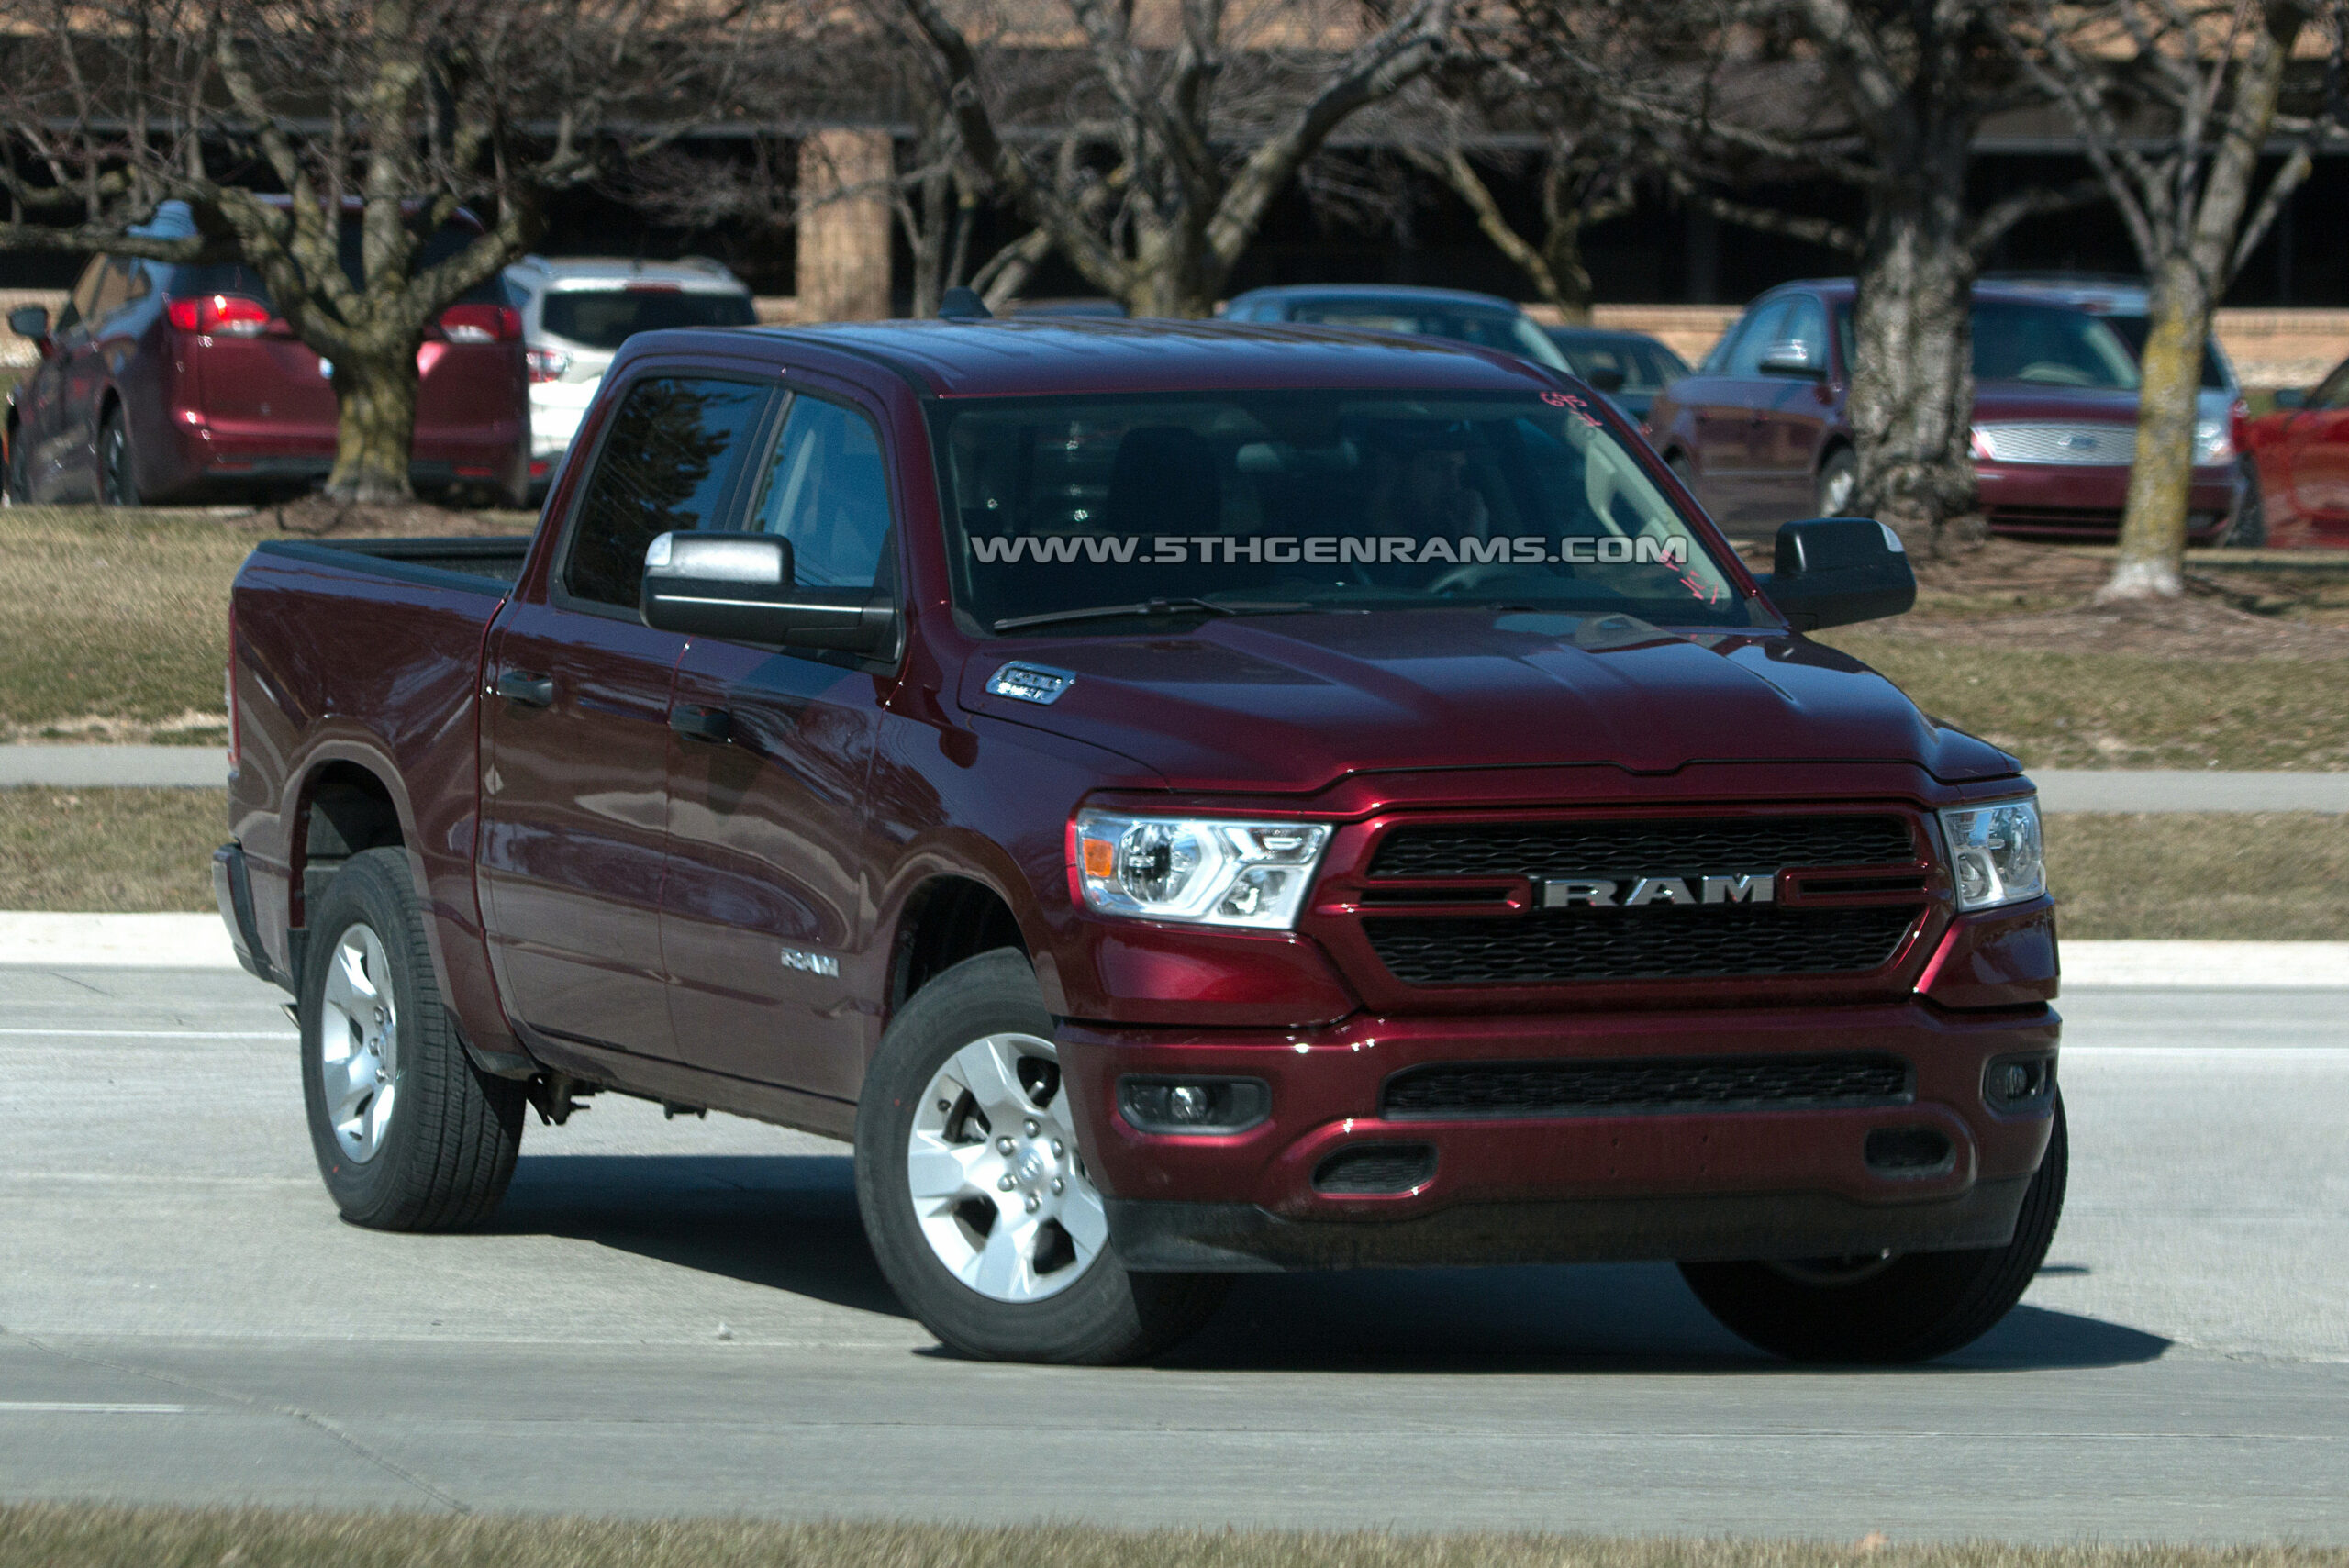 """Here is the 5 Ram 5 """"Express"""" - 5th Gen Rams 